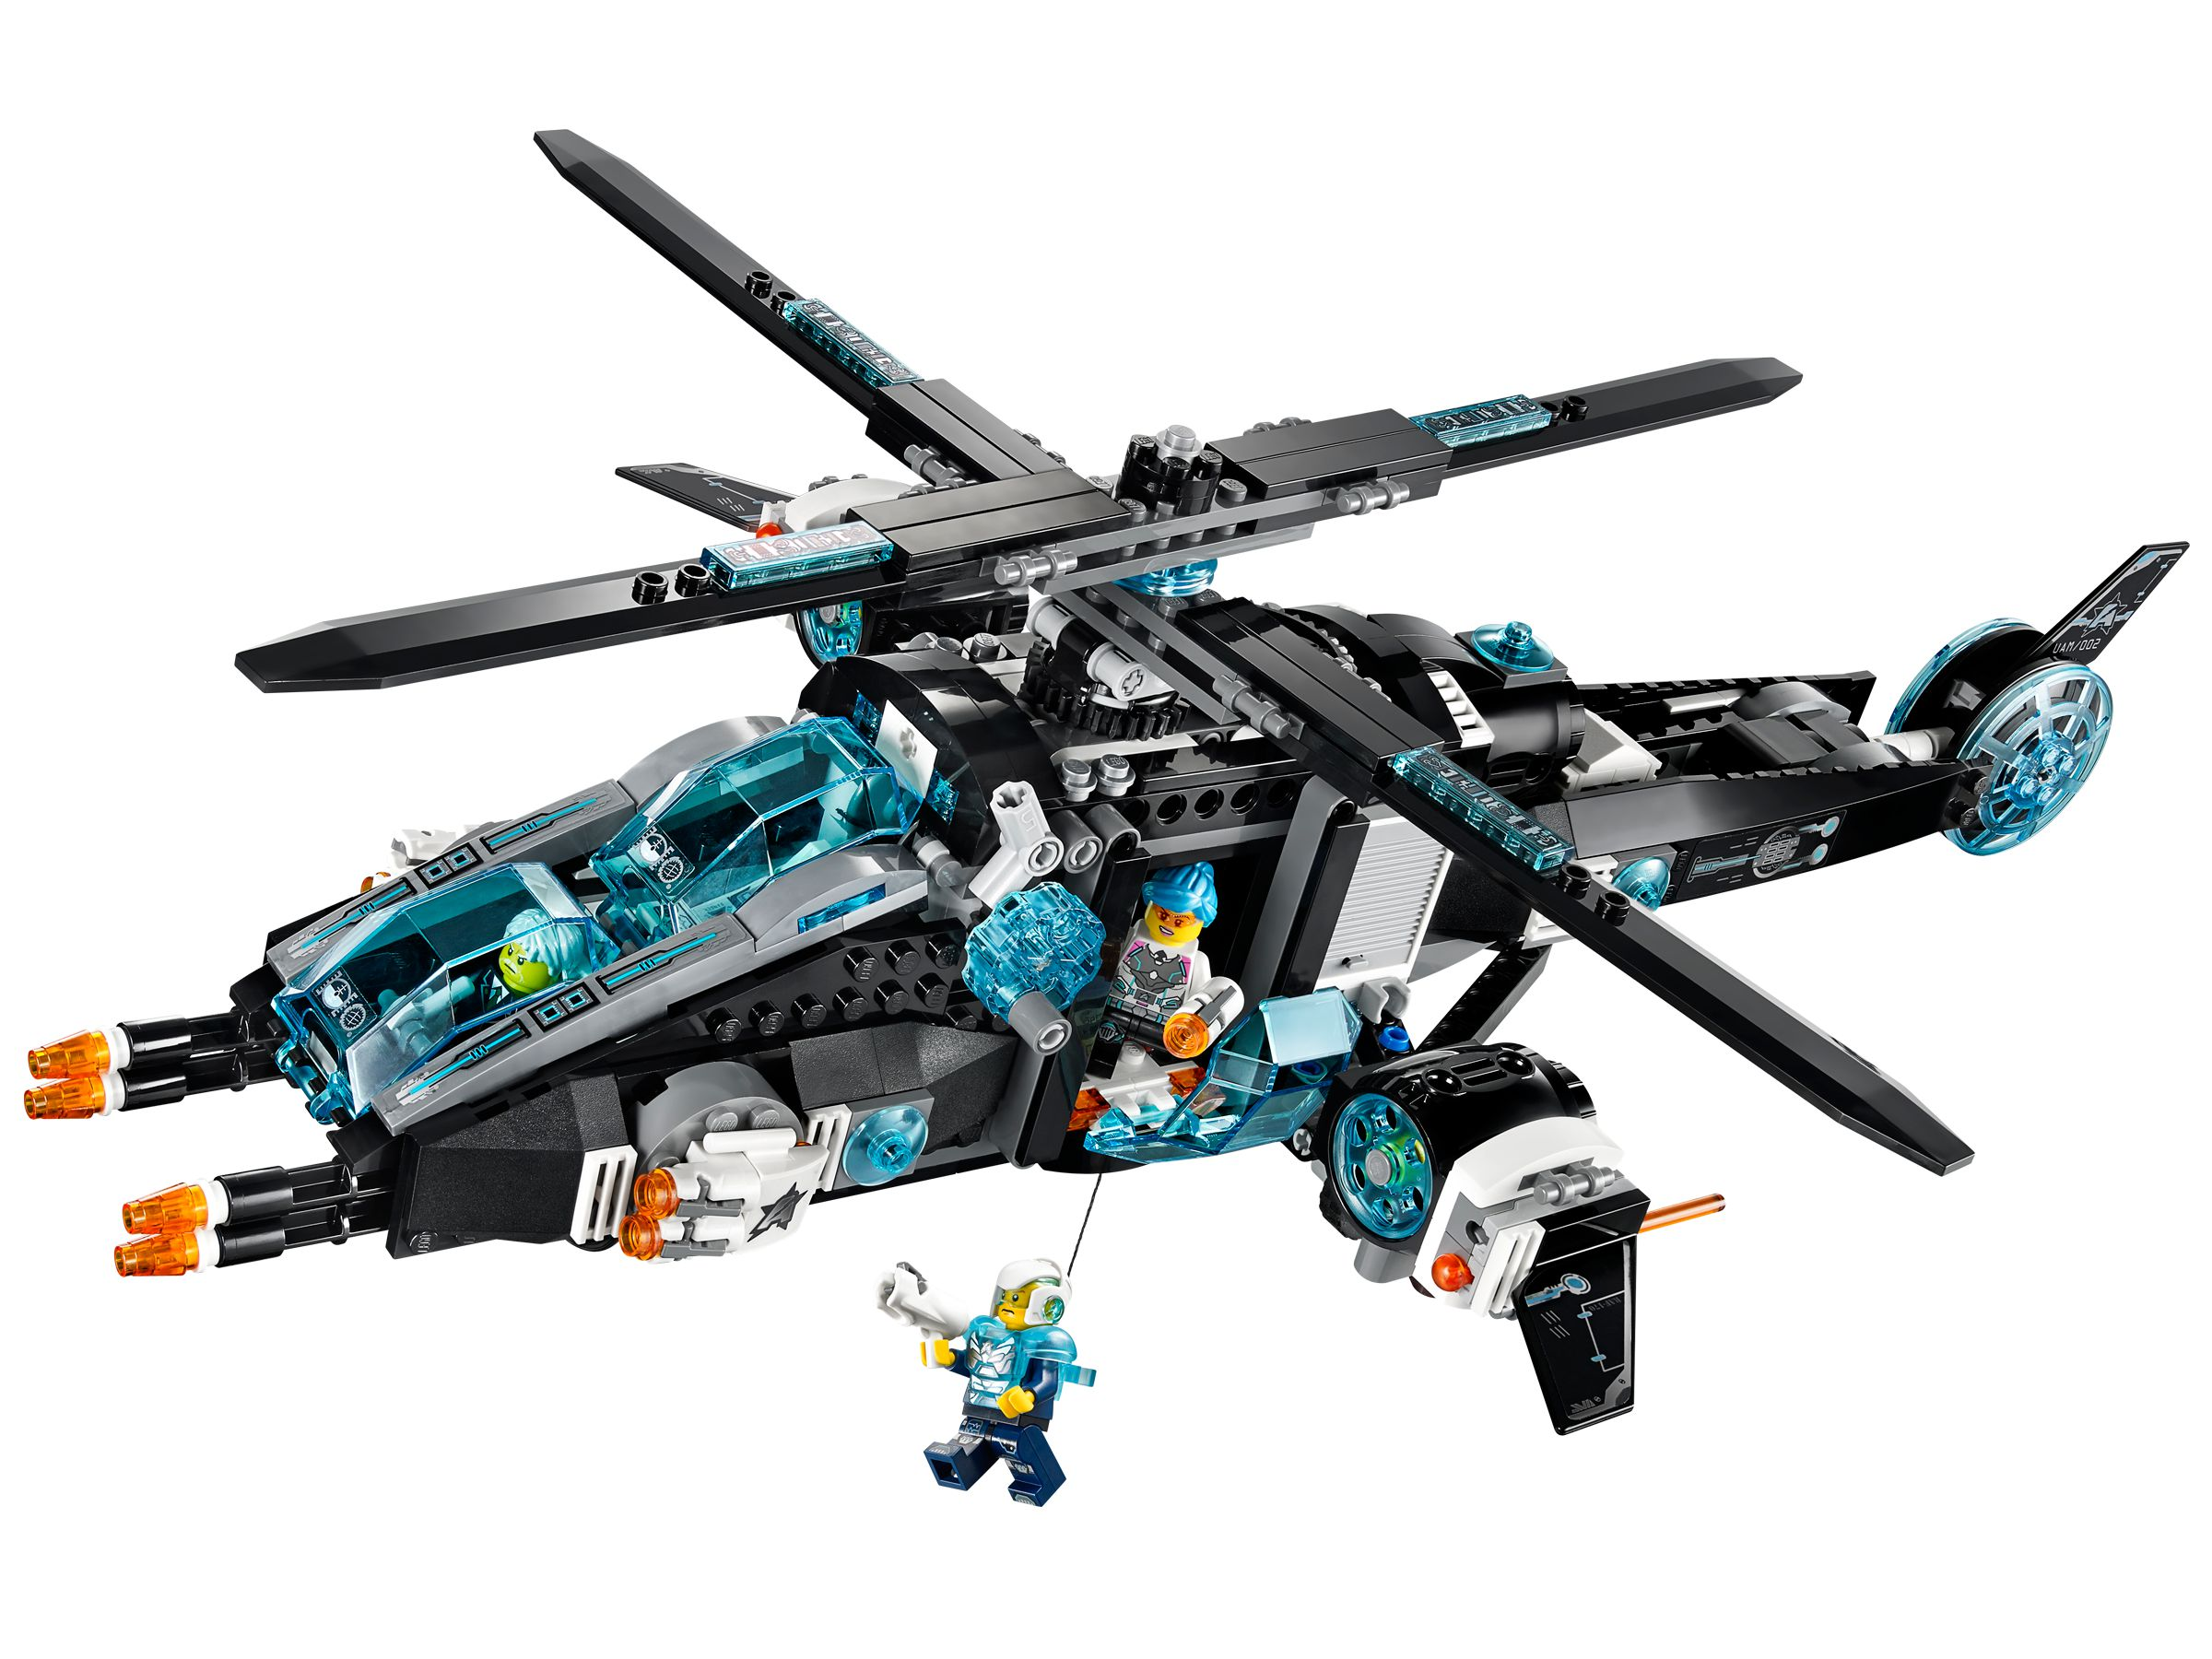 LEGO Agents 70170 UltraCopter vs. AntiMatter LEGO_70170_alt2.jpg